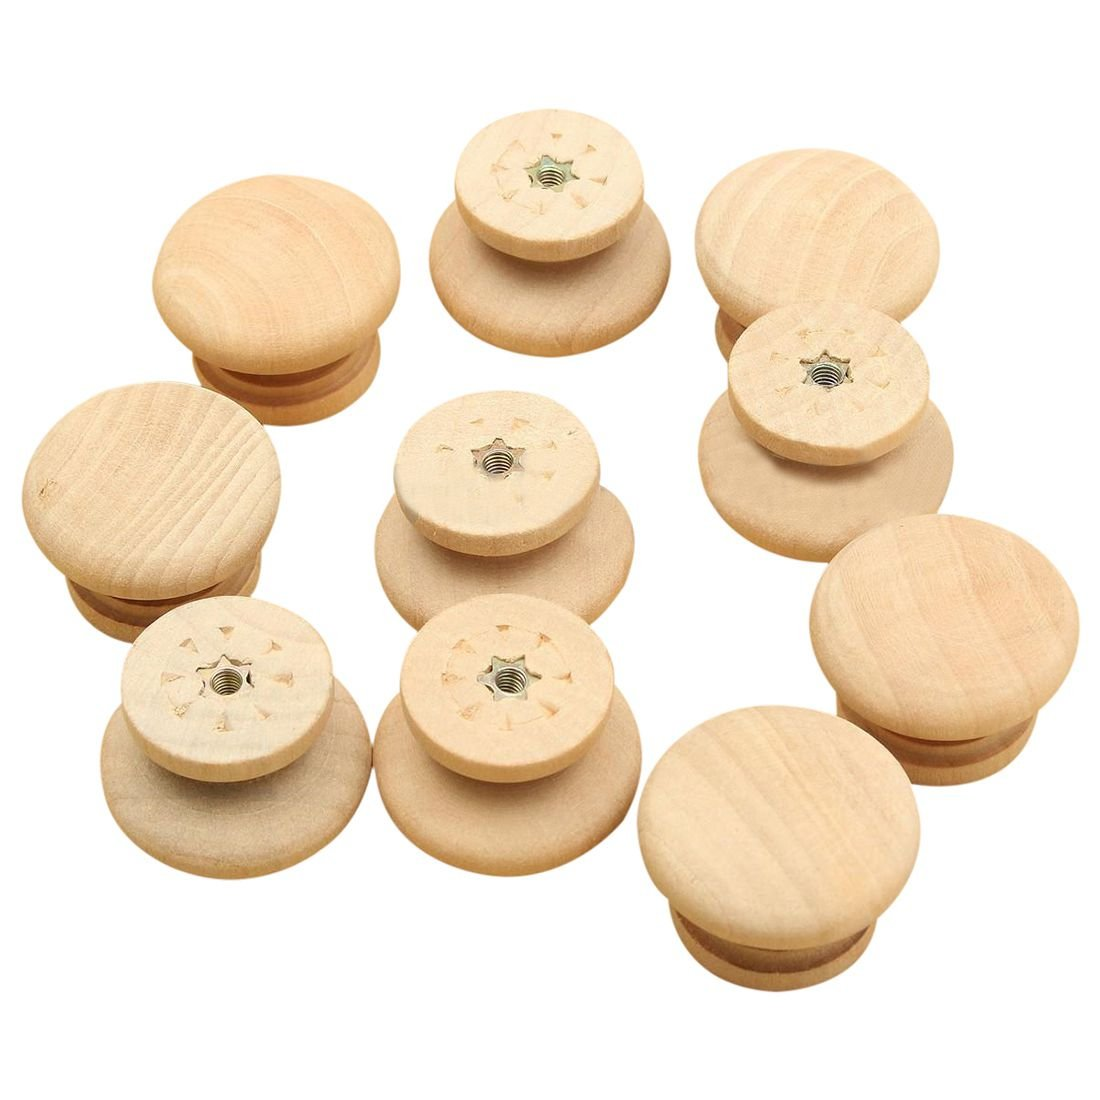 SODIAL 10pcs 35mm Natural Wood Wooden Drawer Wardrobe Door Cabinet Knob Pull With Screw